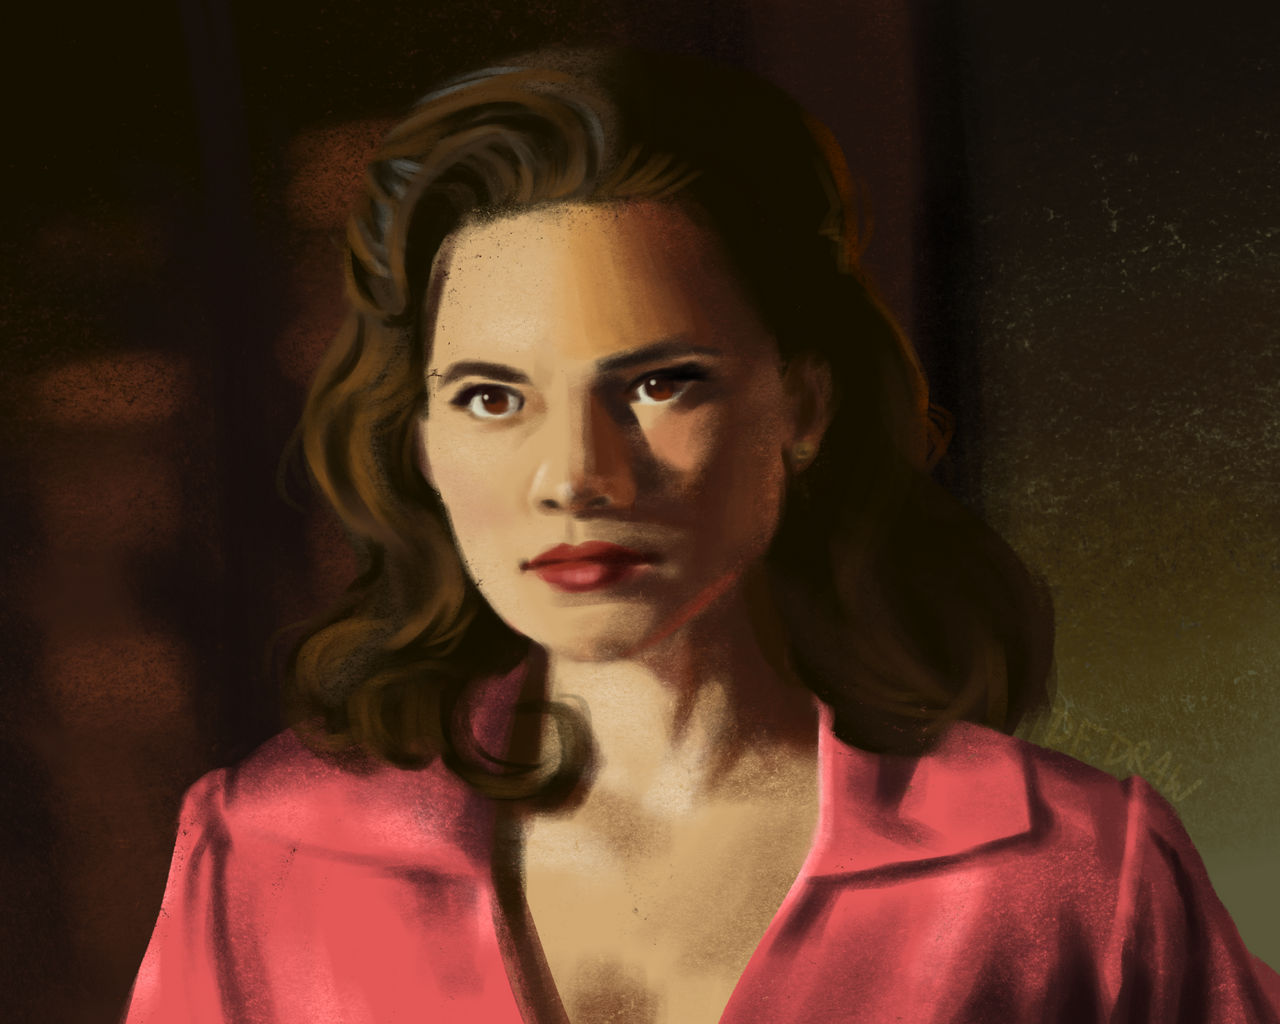 Agent Carter - Smoke and Mirrors